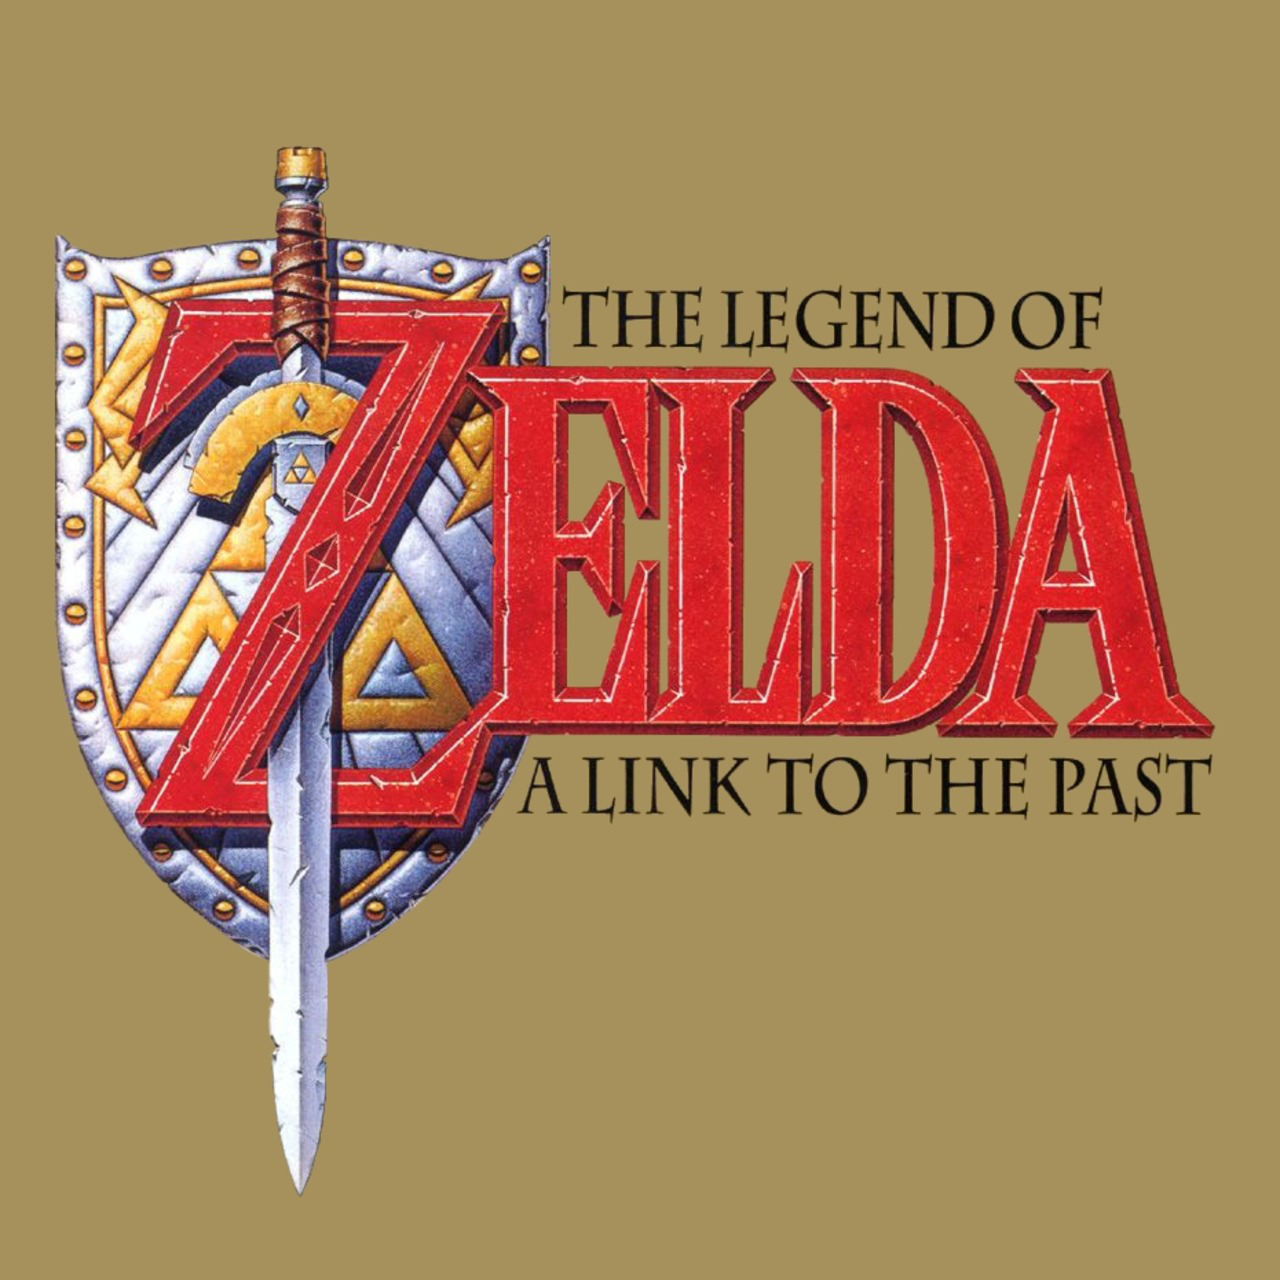 Eastern Palace - The Legend of Zelda: A Link to the Past